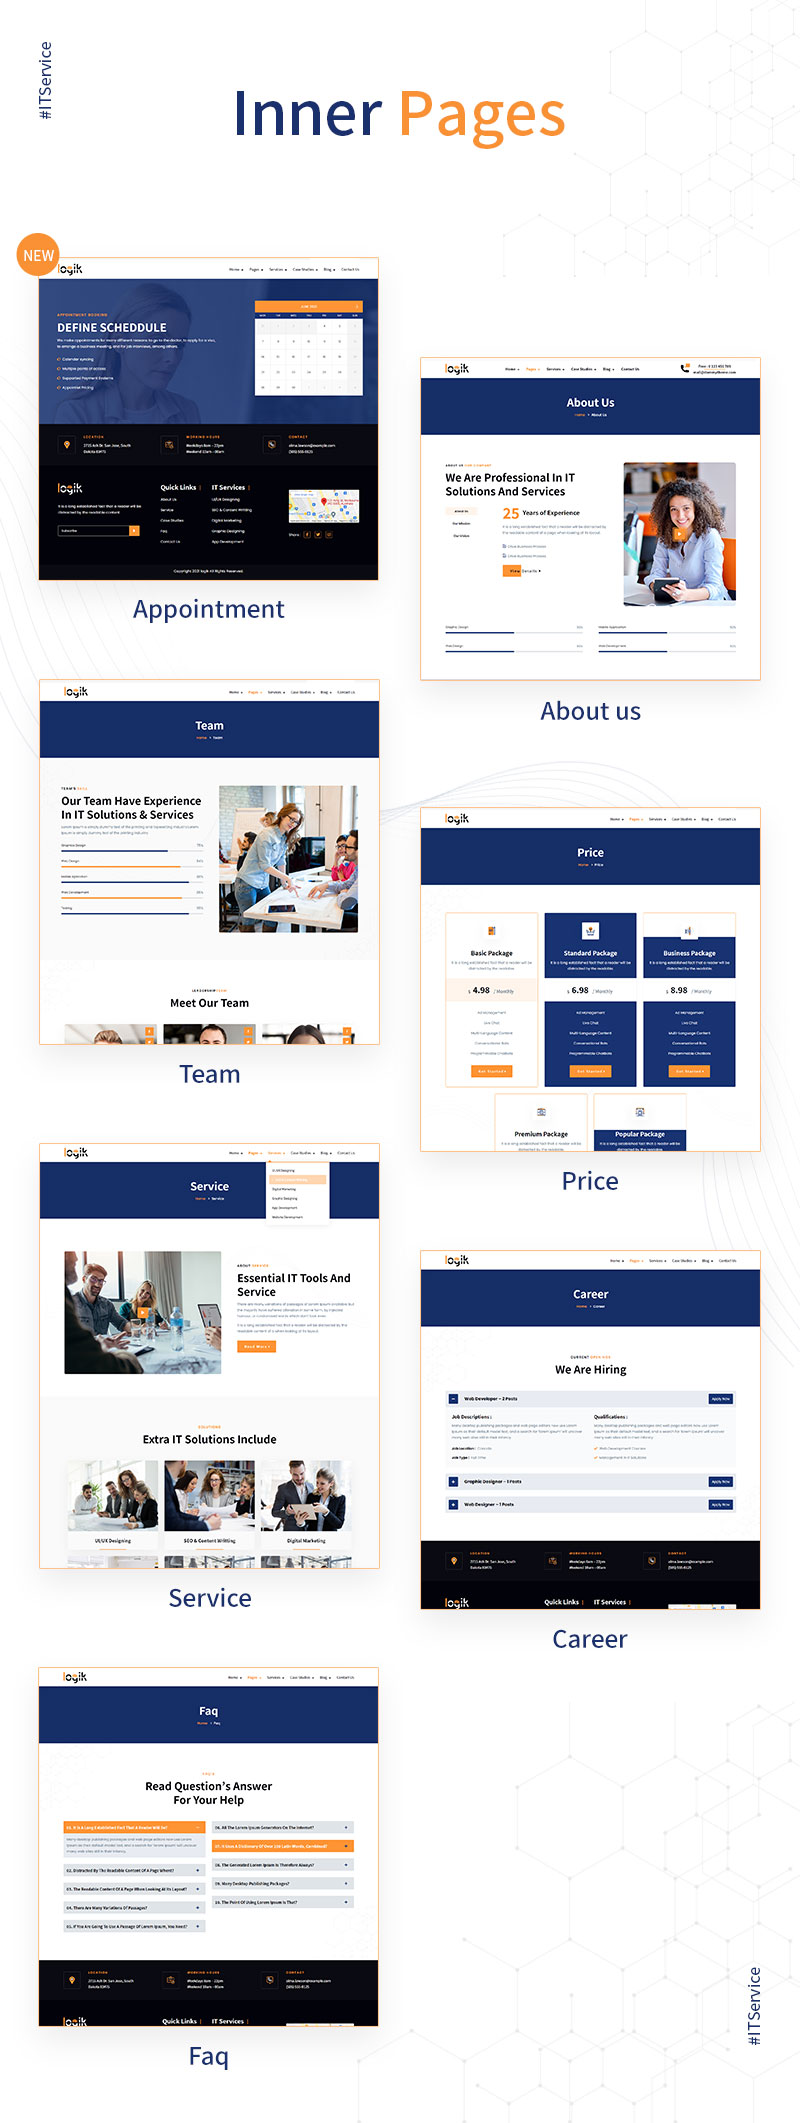 WordPress Themes for IT Company | Logik | Iqonic Design it solutions and technology wordpress theme Logik 03 innerpages new